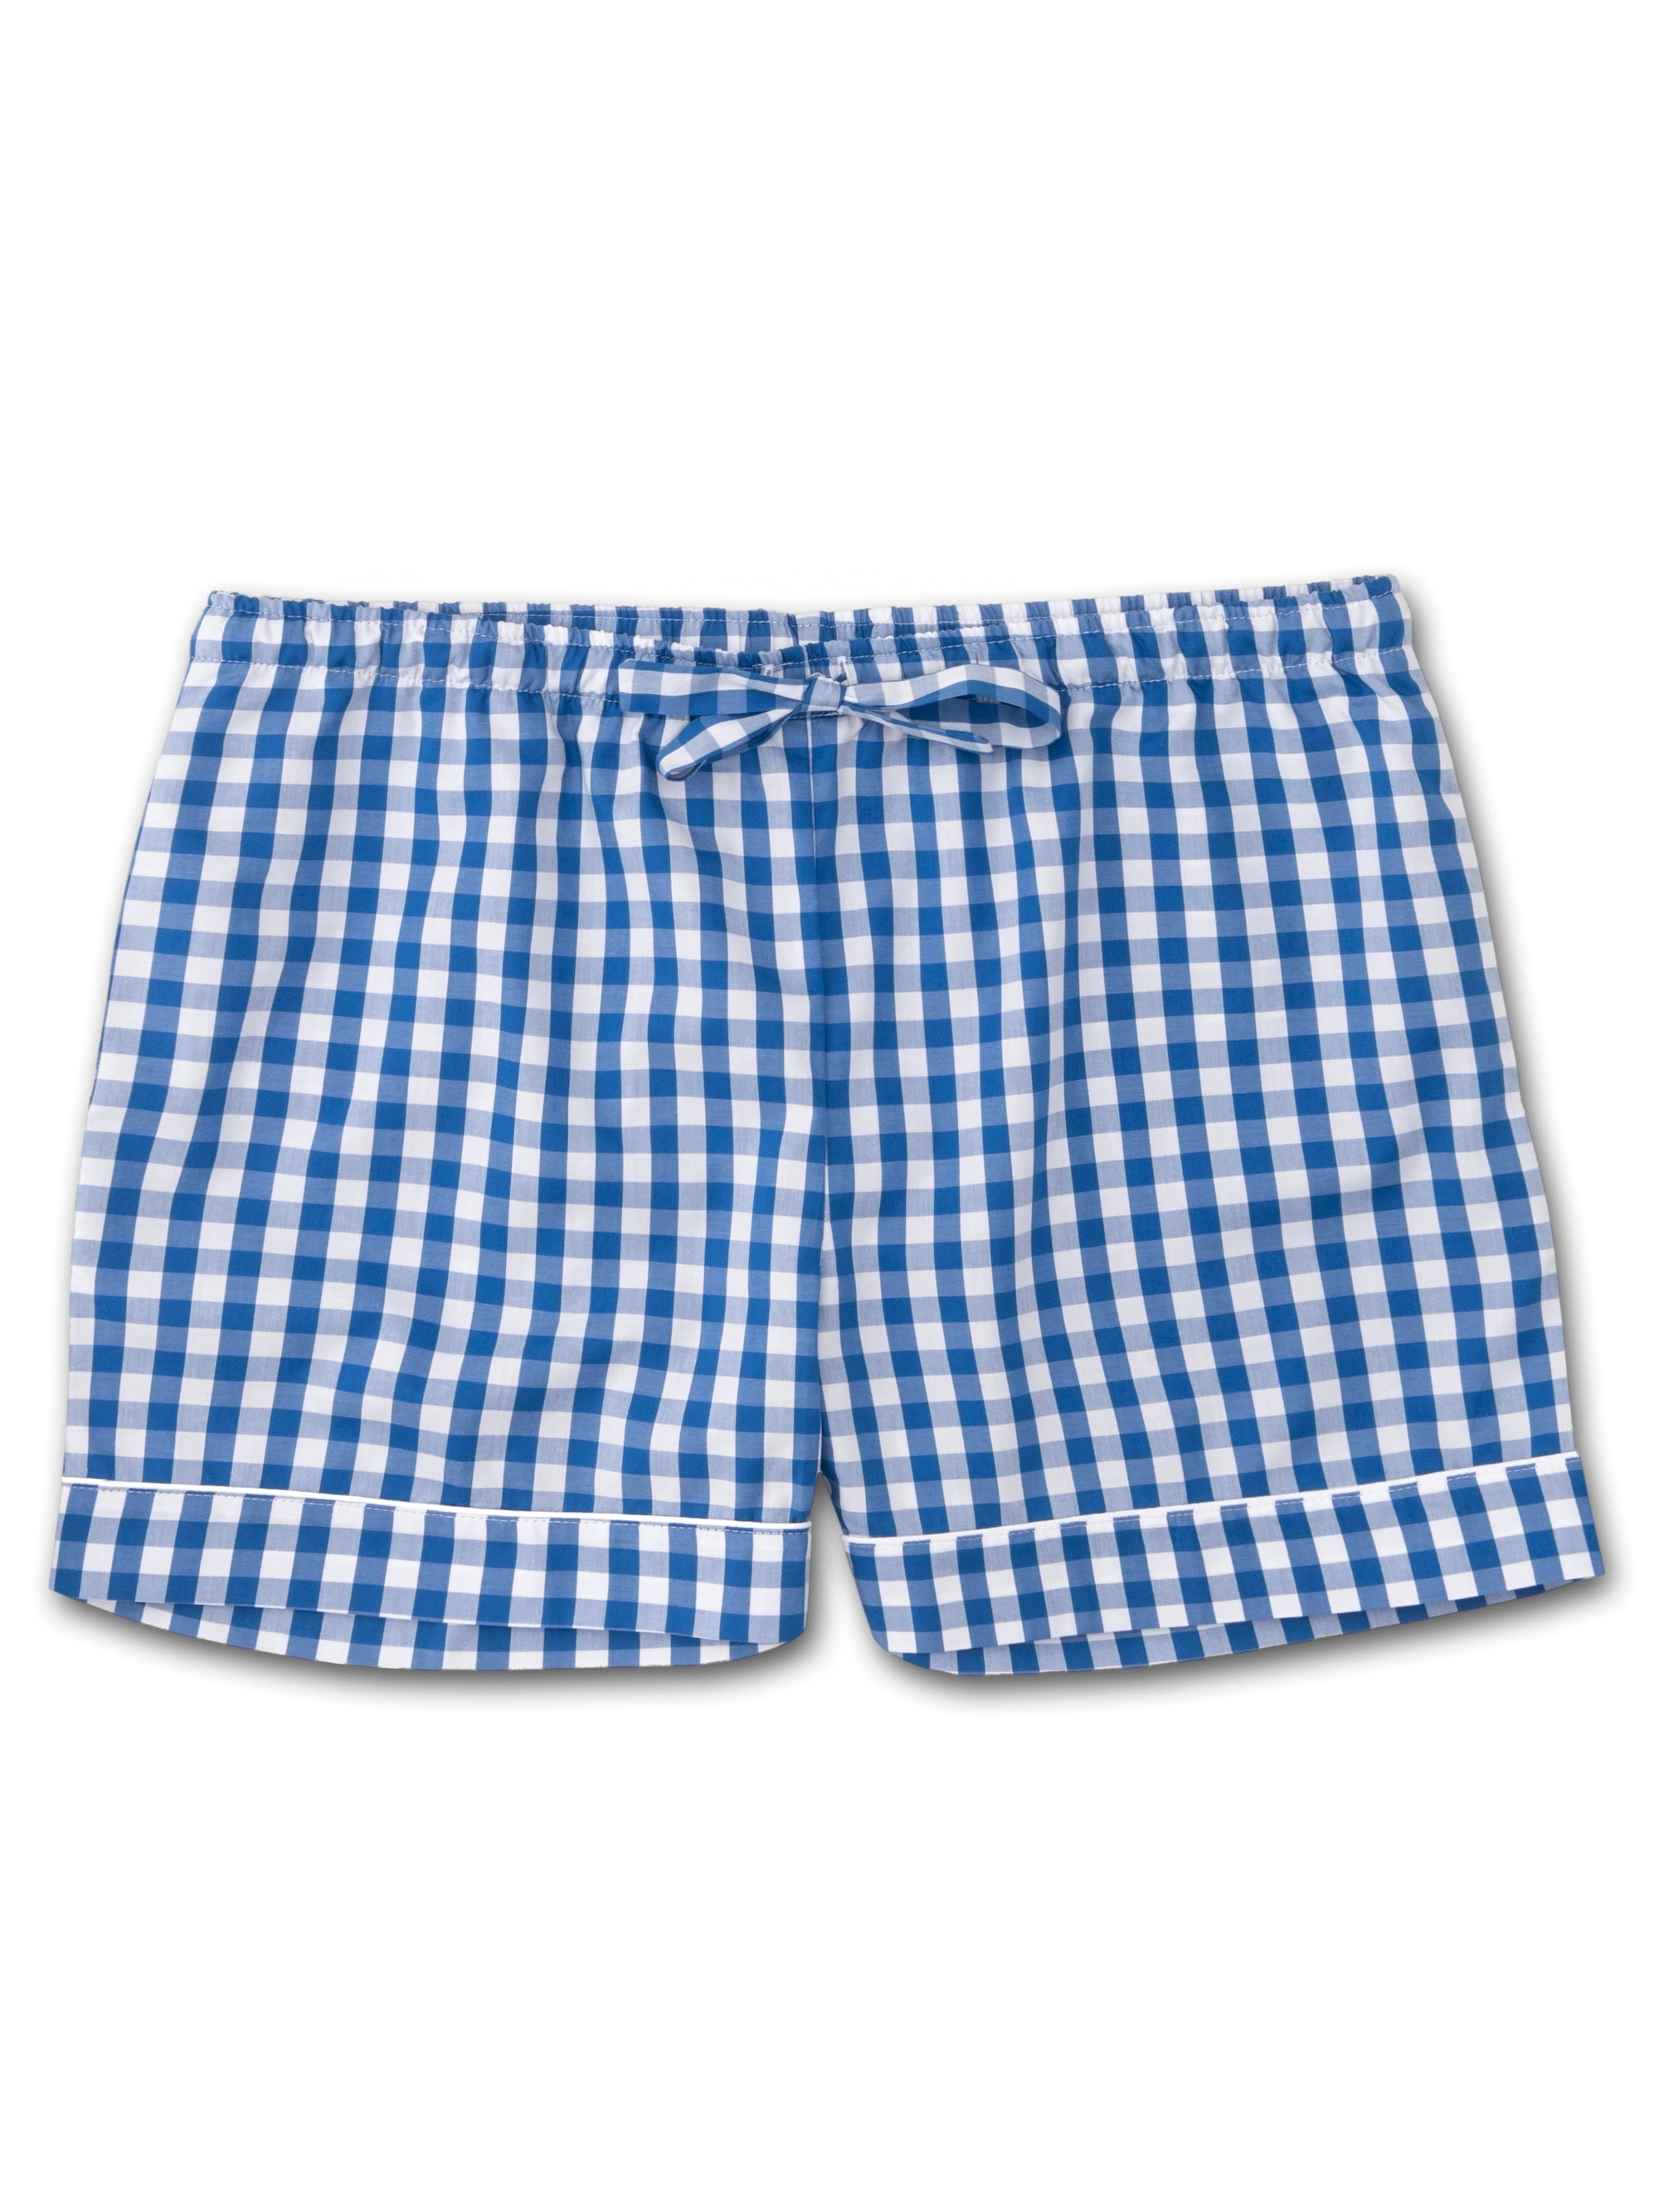 Women's Lounge Shorts Barker 26 Cotton Check Blue